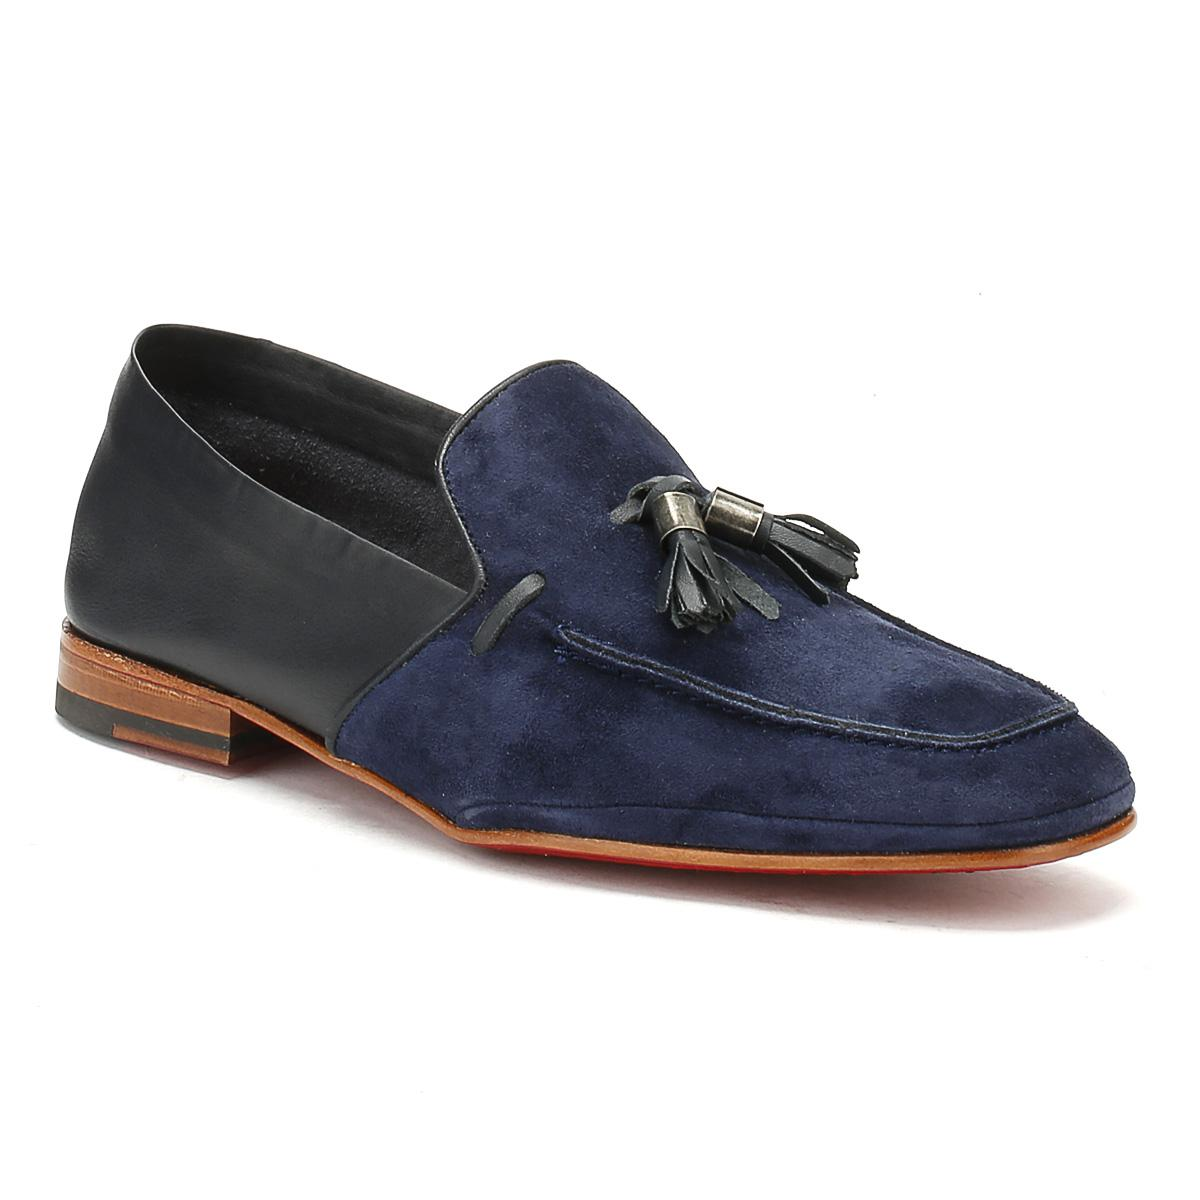 Mens Croste Bovino Dark Blue Martini Mule Loafer